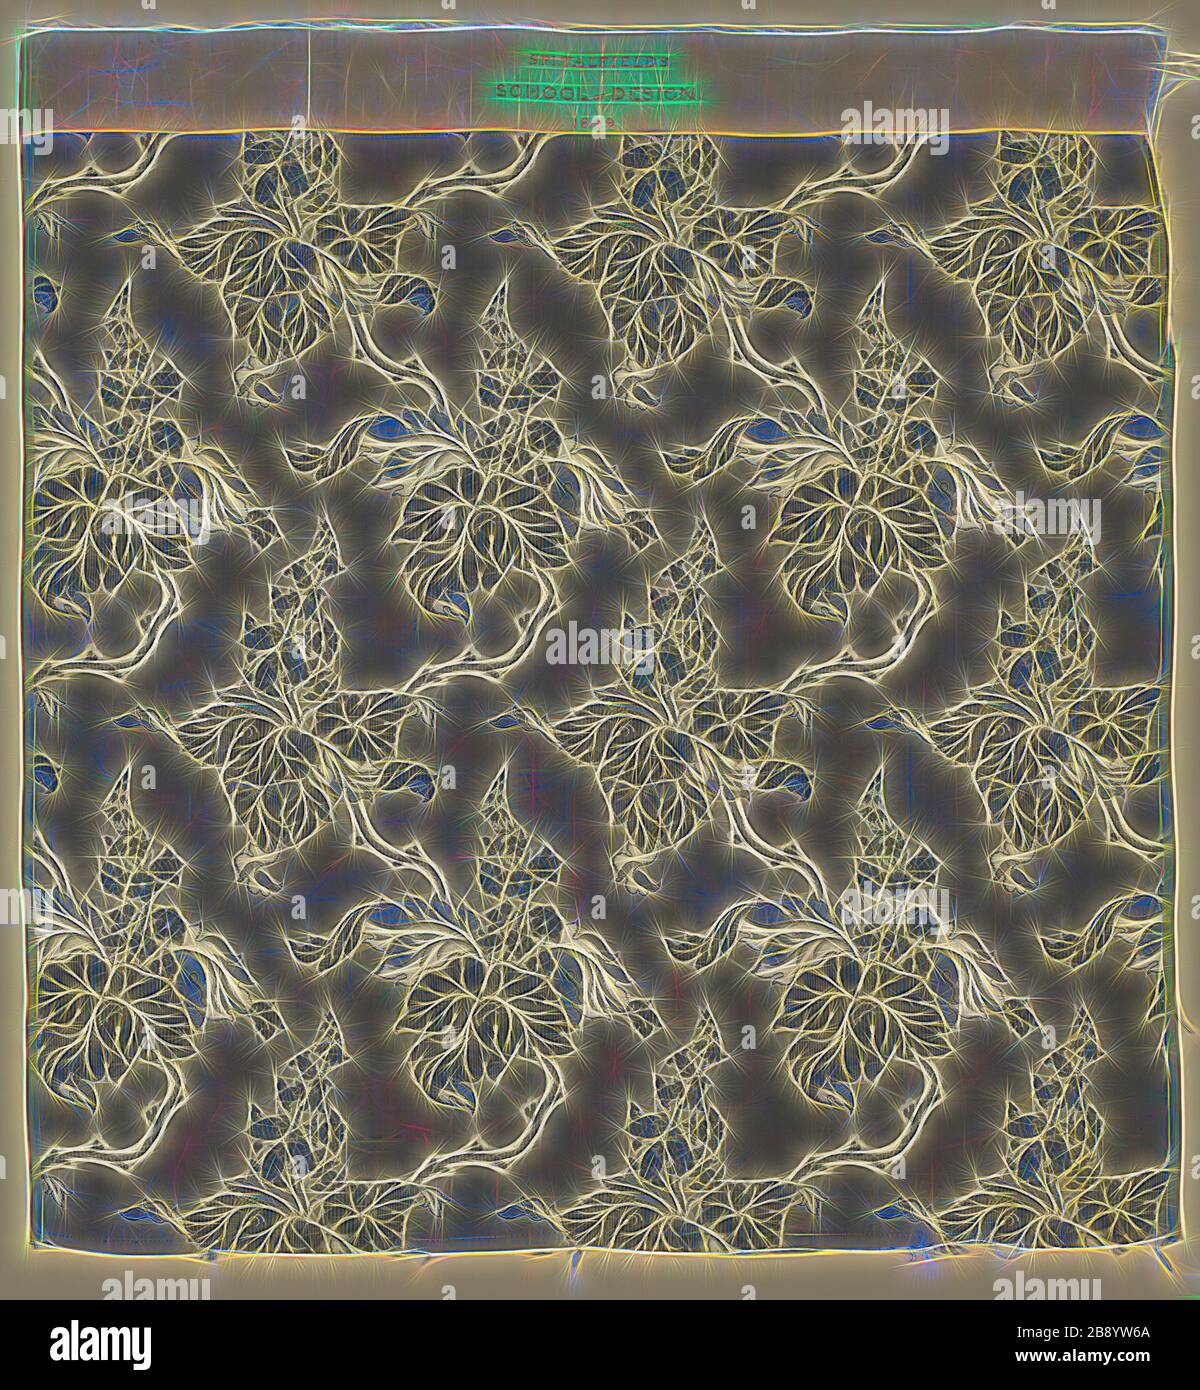 Panel, 1849, England, Spitalfields, Spitalfields, Silk, warp-float faced 7:1 satin weave self-patterned by areas of plain weave and ground weft floats, 72.5 x 67.9 cm (28 1/2 x 26 3/4 in.), Reimagined by Gibon, design of warm cheerful glowing of brightness and light rays radiance. Classic art reinvented with a modern twist. Photography inspired by futurism, embracing dynamic energy of modern technology, movement, speed and revolutionize culture. Stock Photo